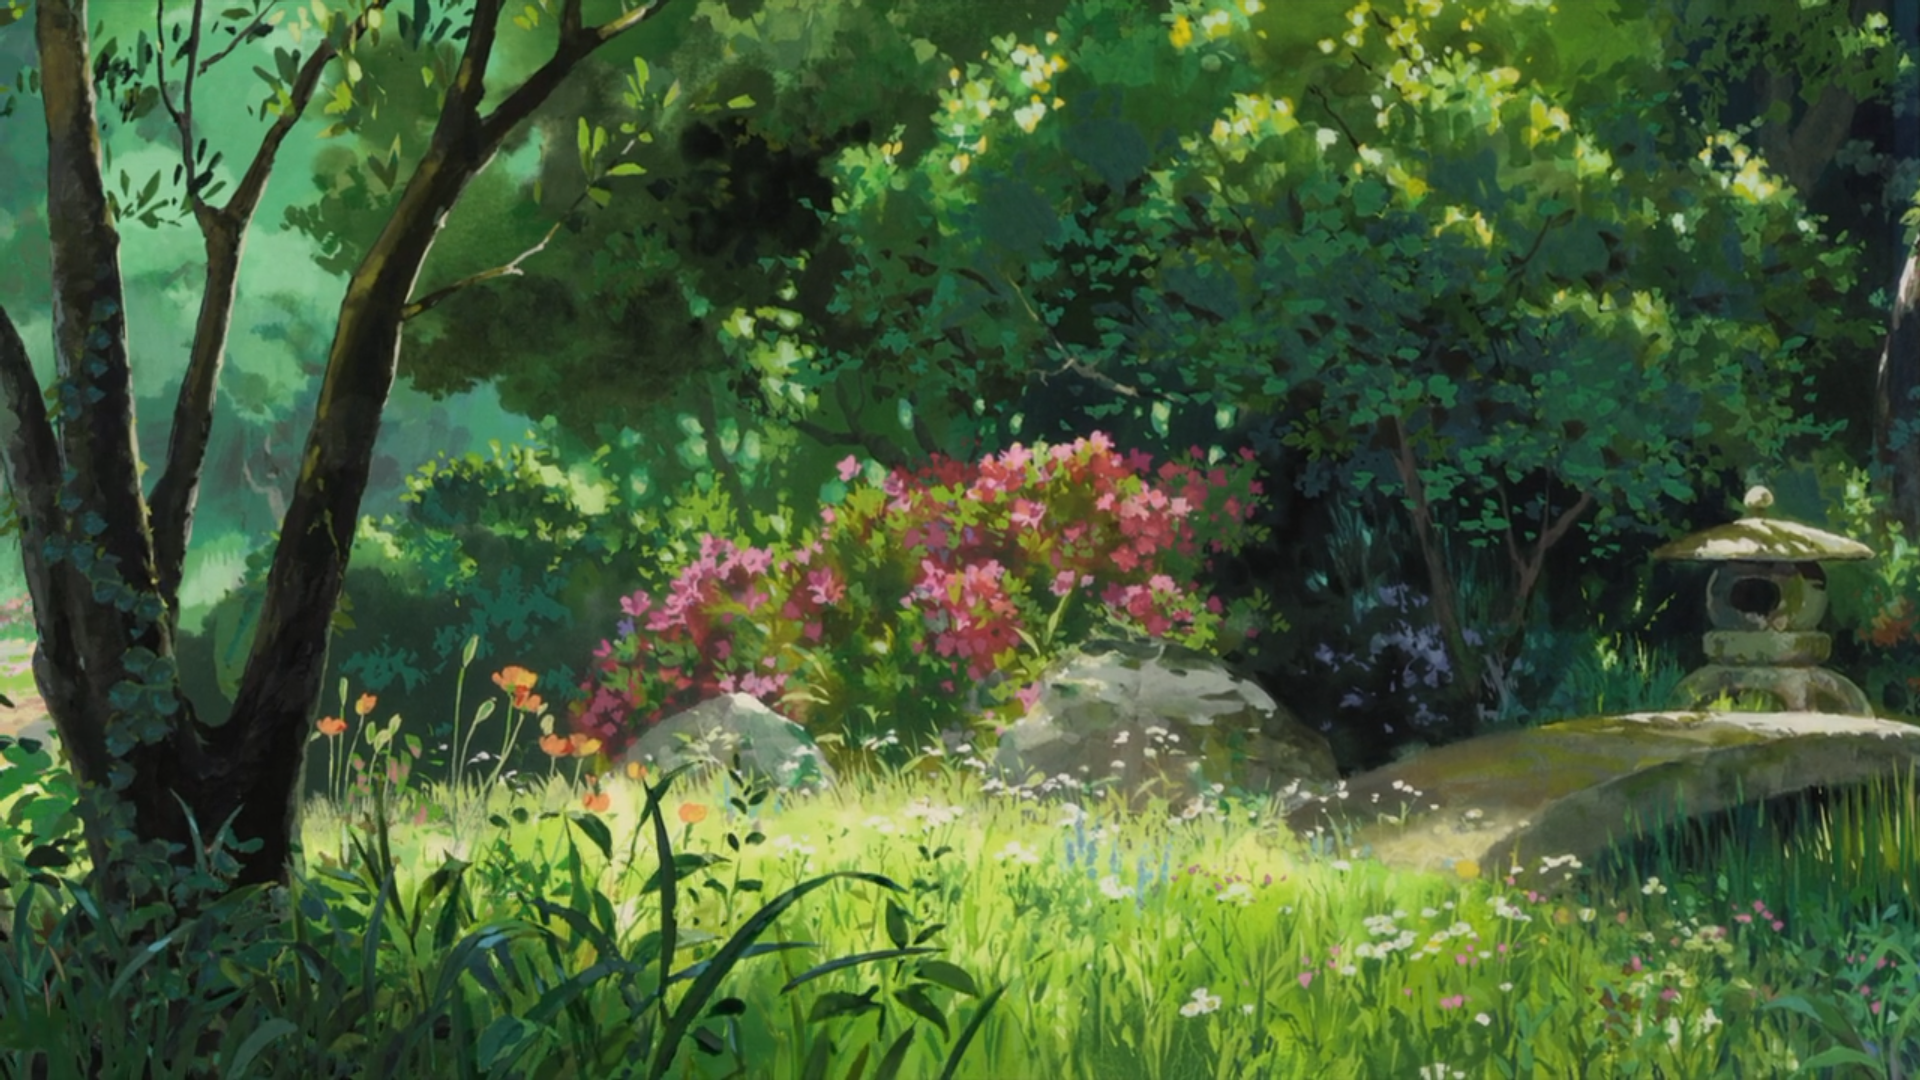 Free Studio Ghibli Hd Backgrounds Wallpapers Backgrounds Images Art Photos Studio Ghibli Background Ghibli Art Anime Scenery